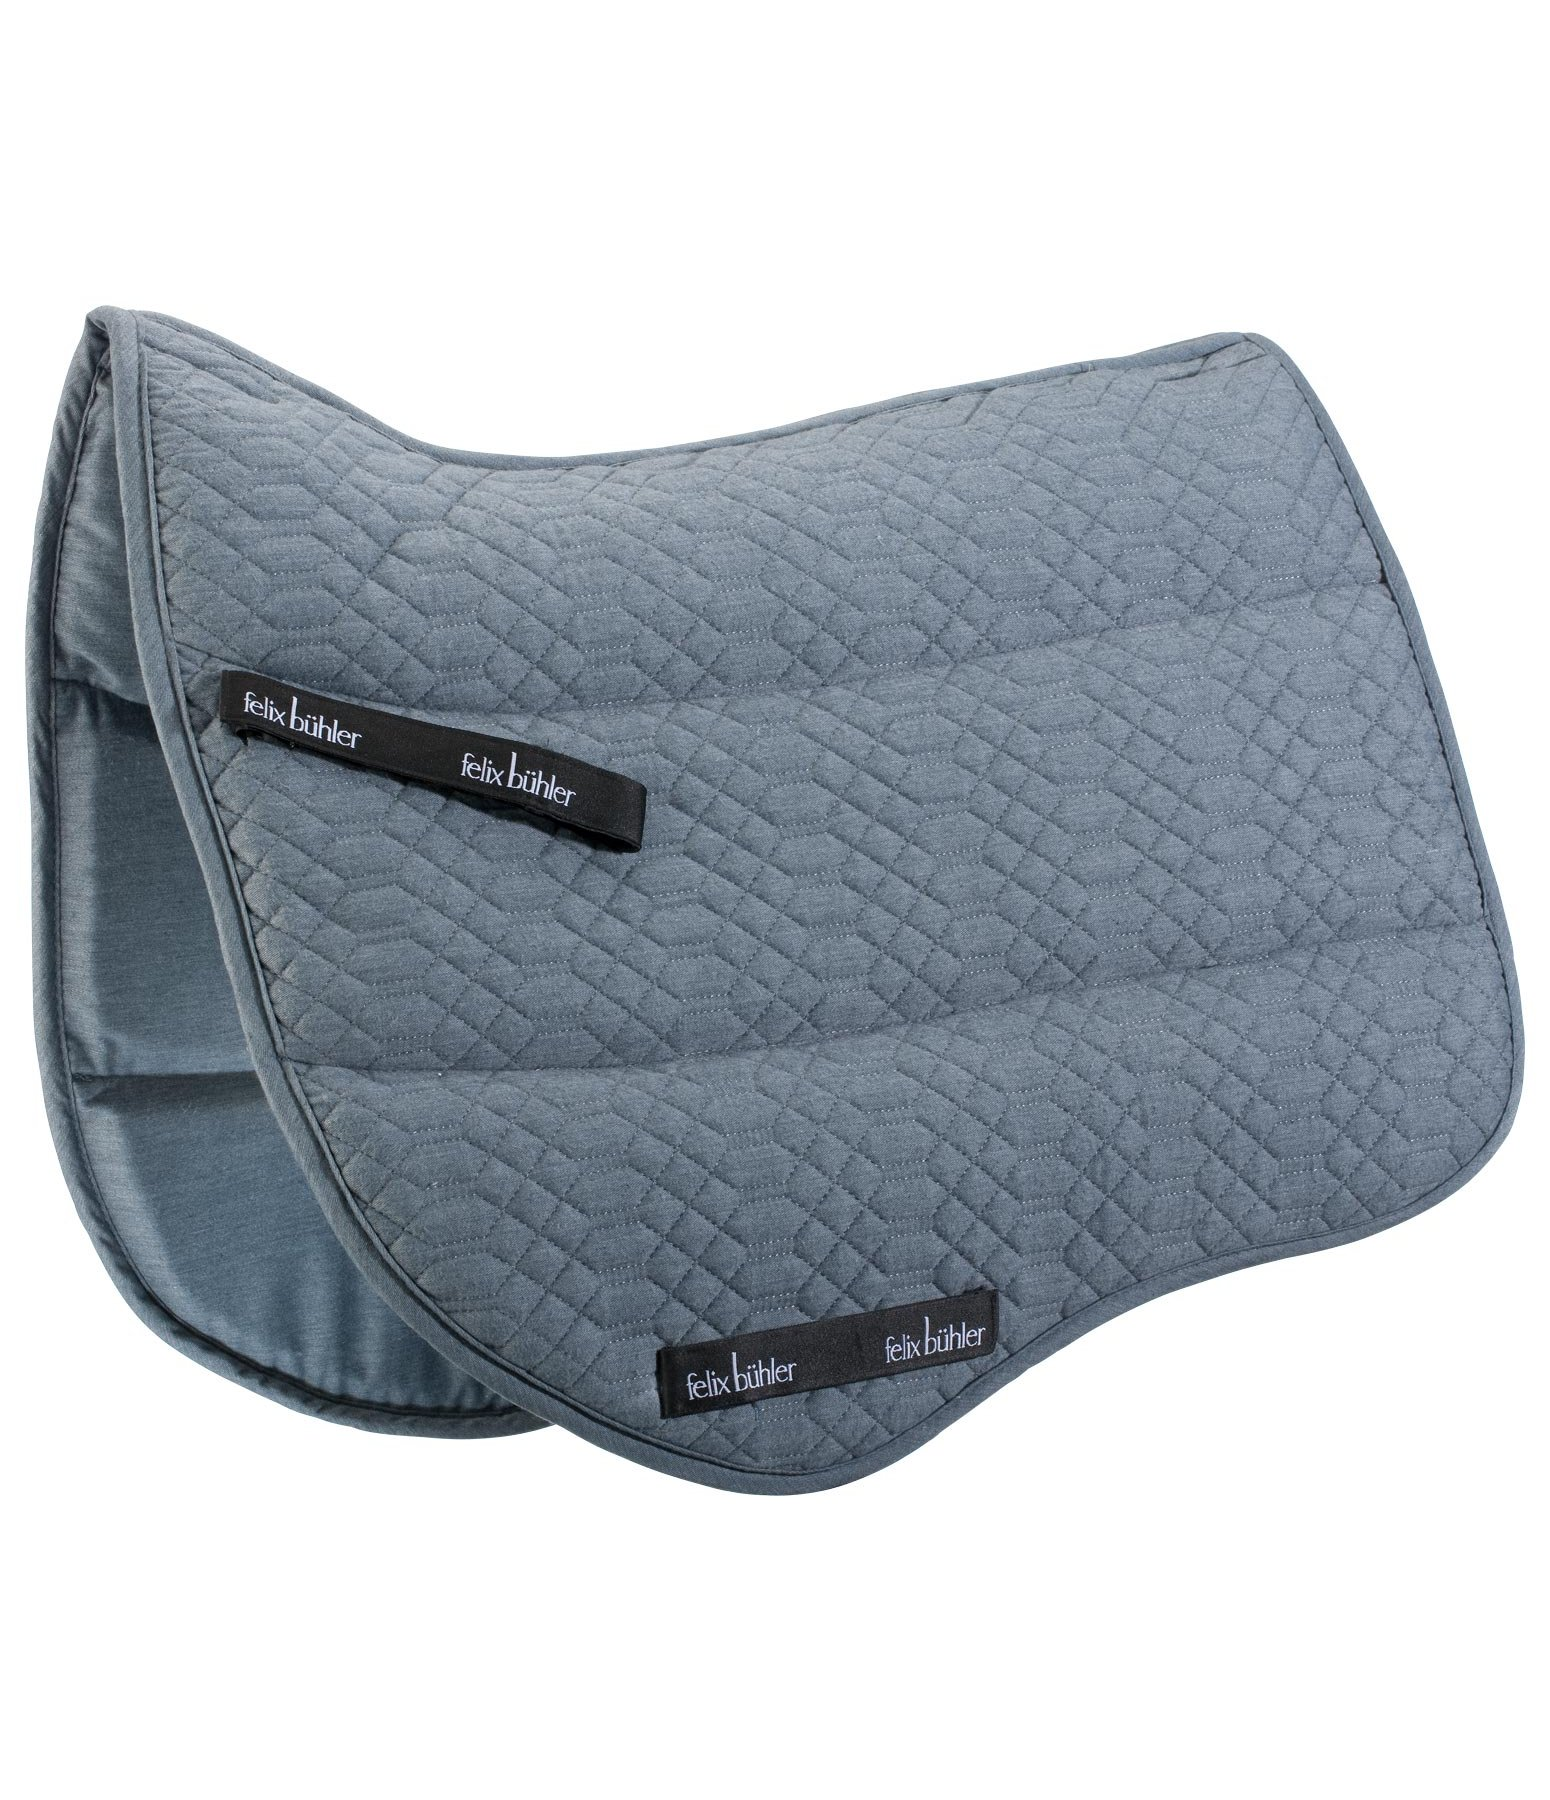 f10332e620 Felix Bühler Saddle Pad Muscle Pro with Correctional Inserts - 210893-DR-GR